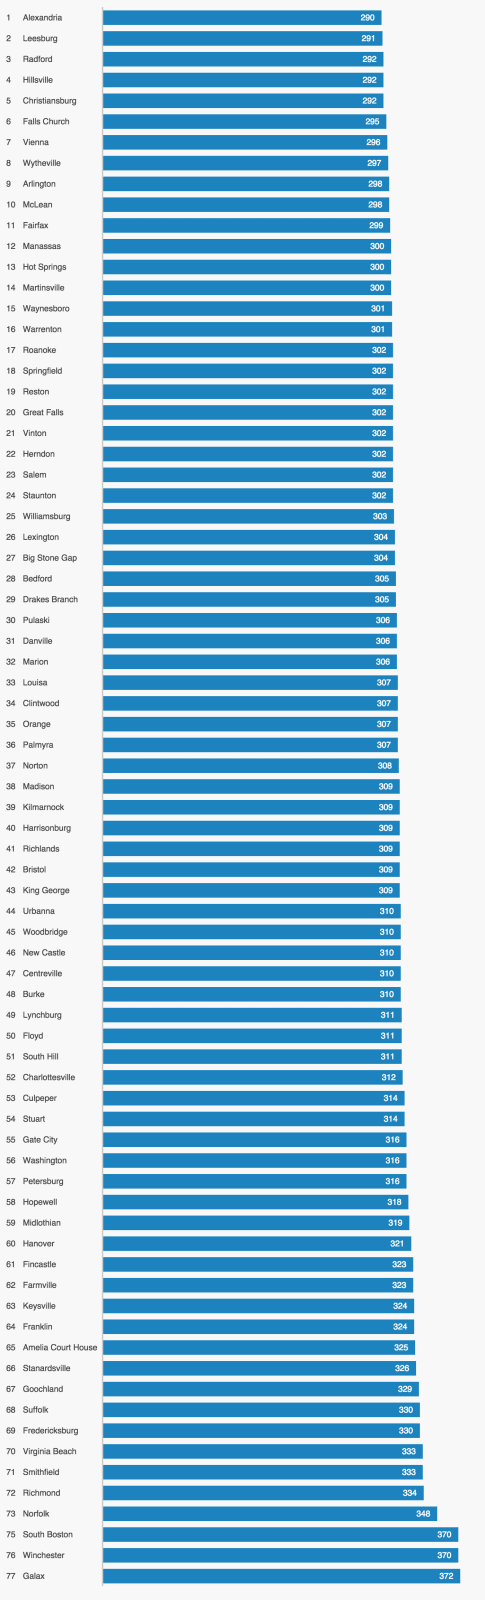 This graph compares the cost of insuring a sample property in Virginia across 70+ cities, and ranks them from the cheapest to the most expensive.